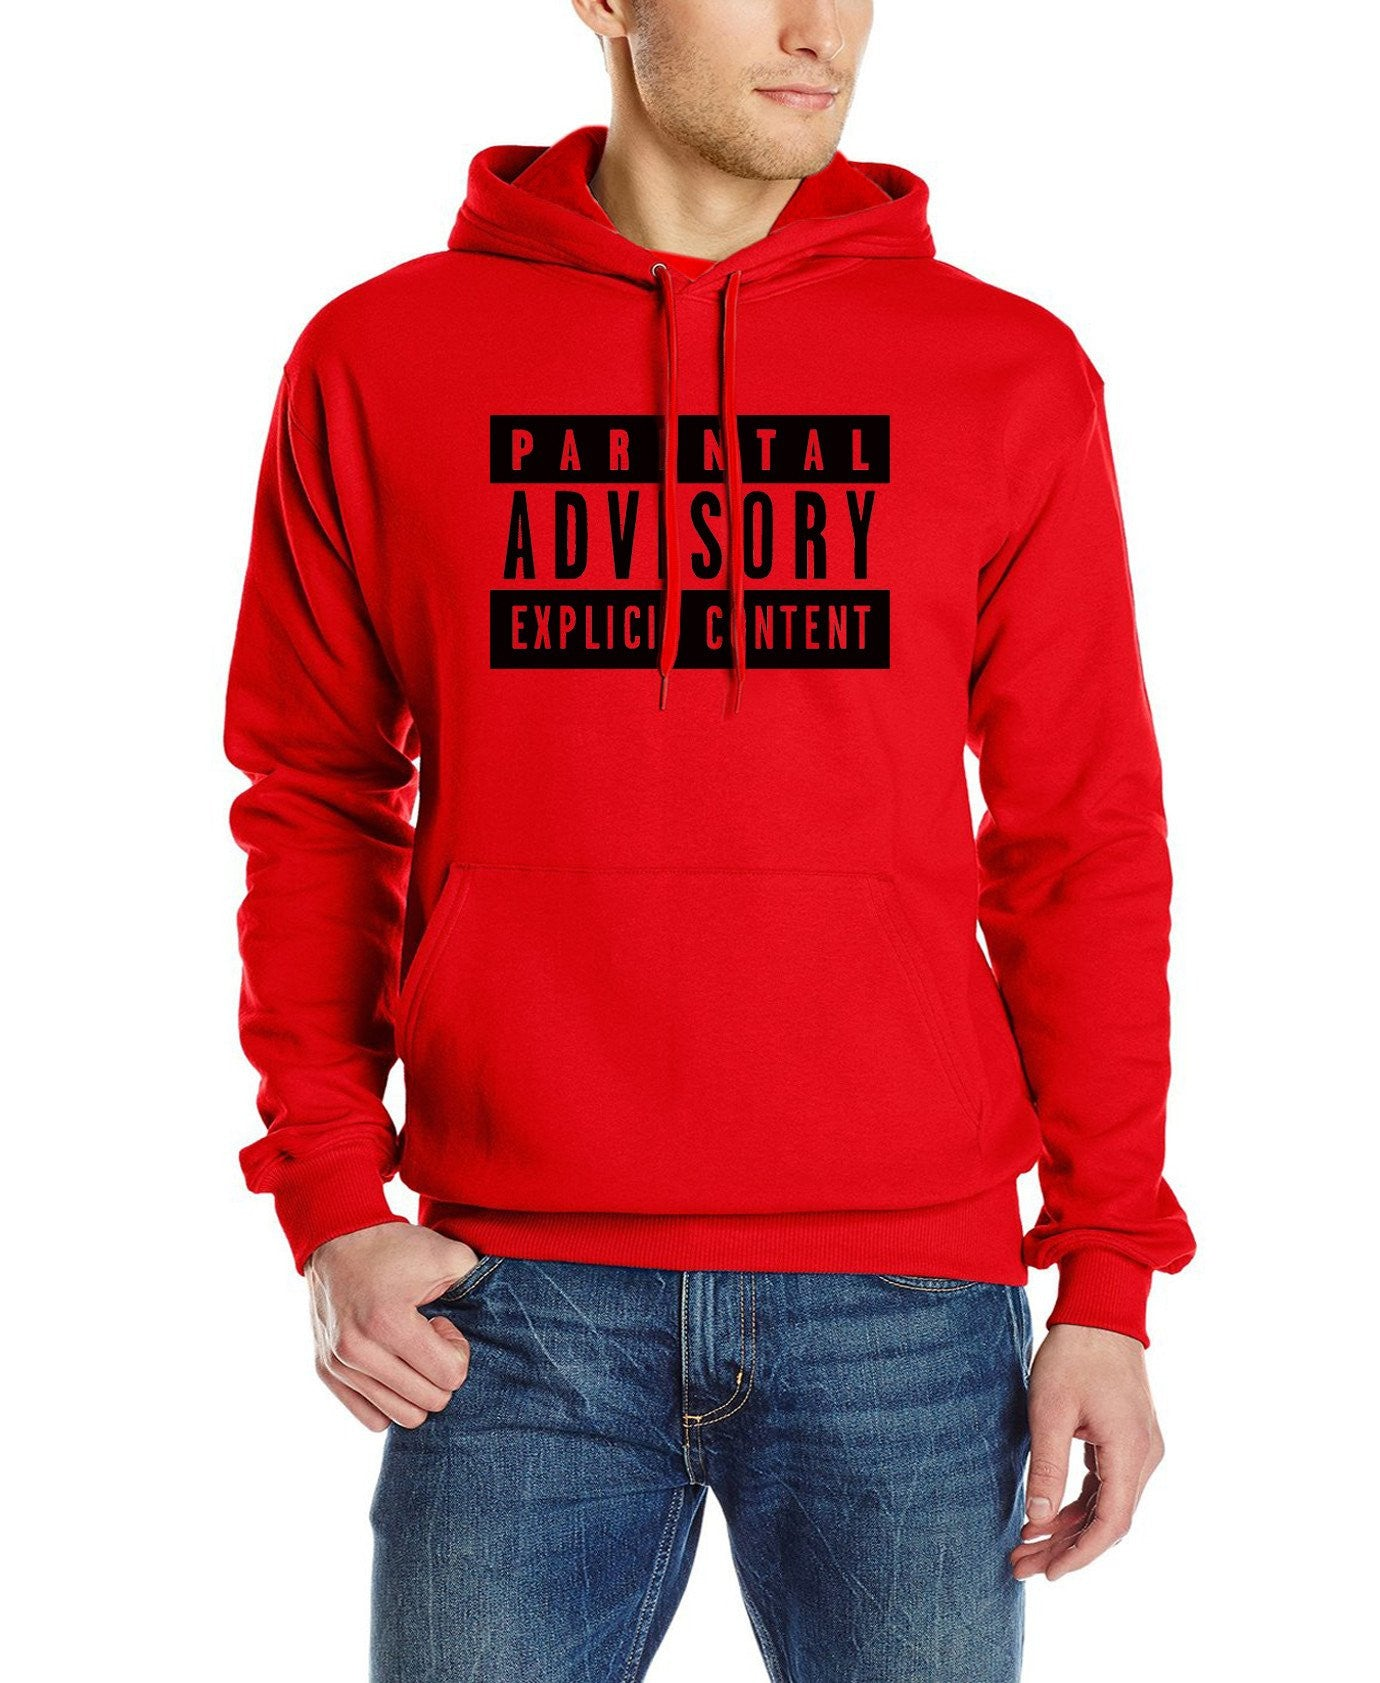 Unisex Hip Hop Long Sleeve Sweatshirt